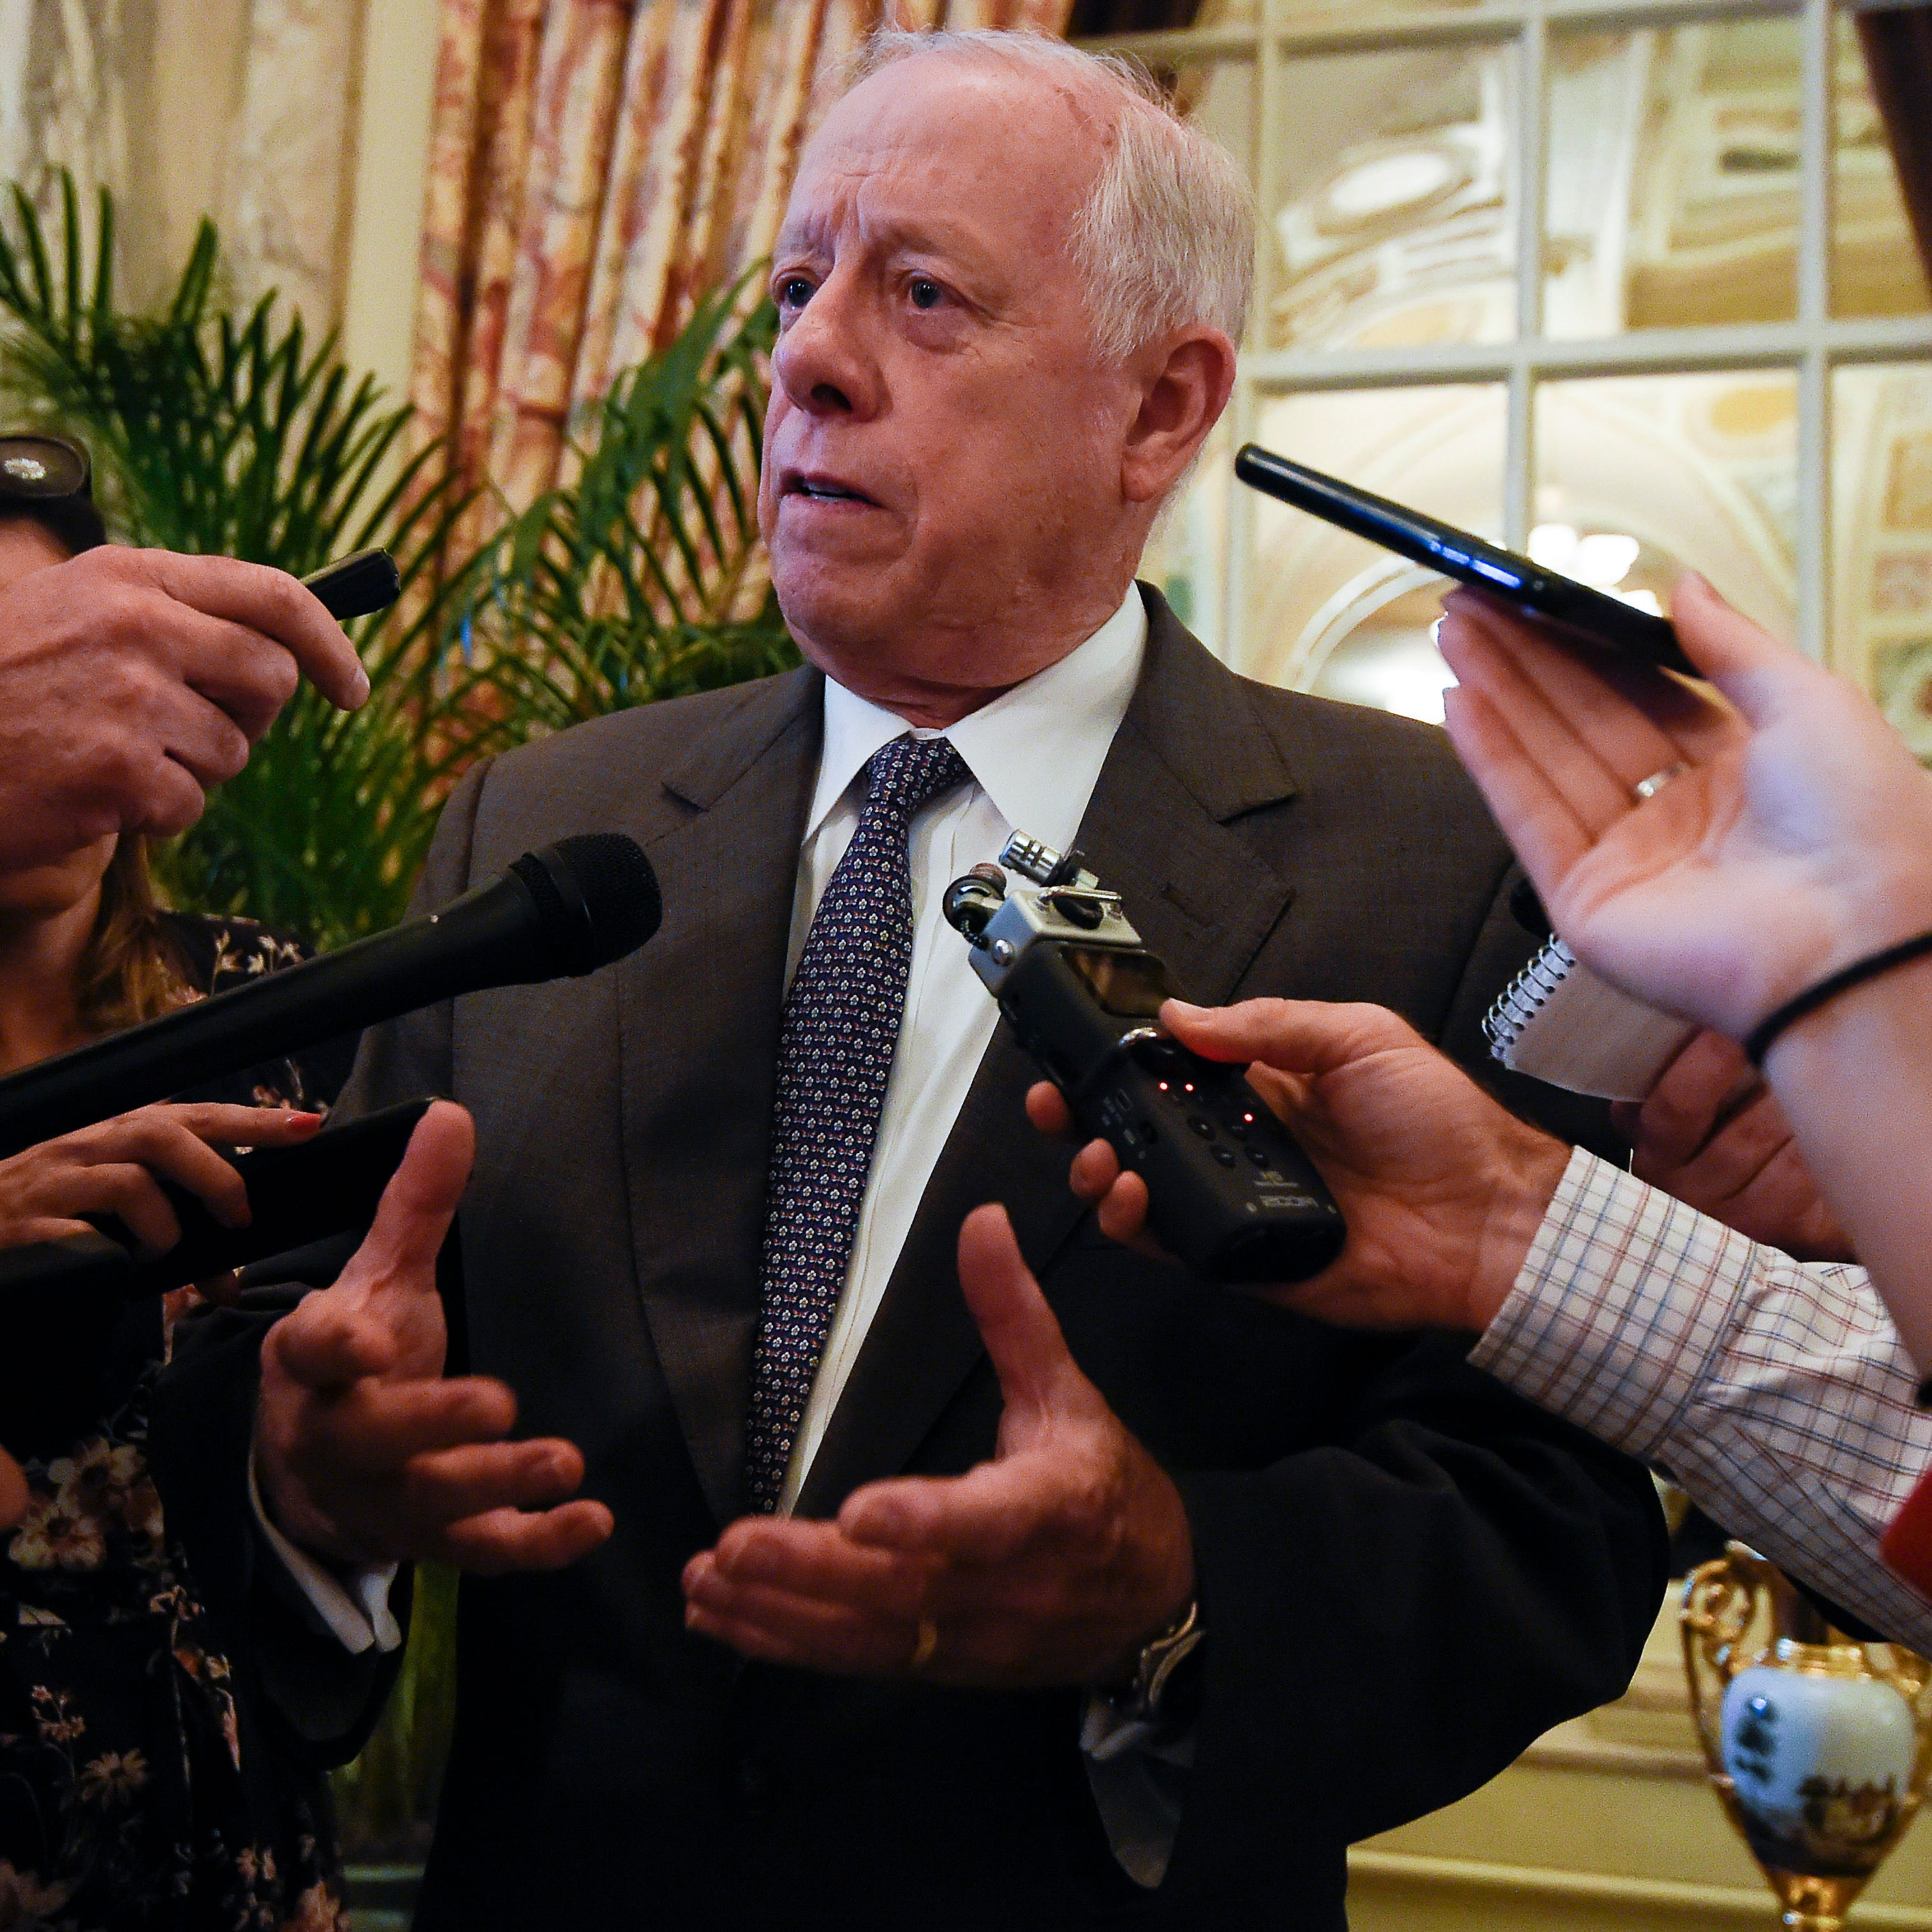 'I did what had to be done': How Phil Bredesen's 'painful' TennCare cuts play into US Senate race